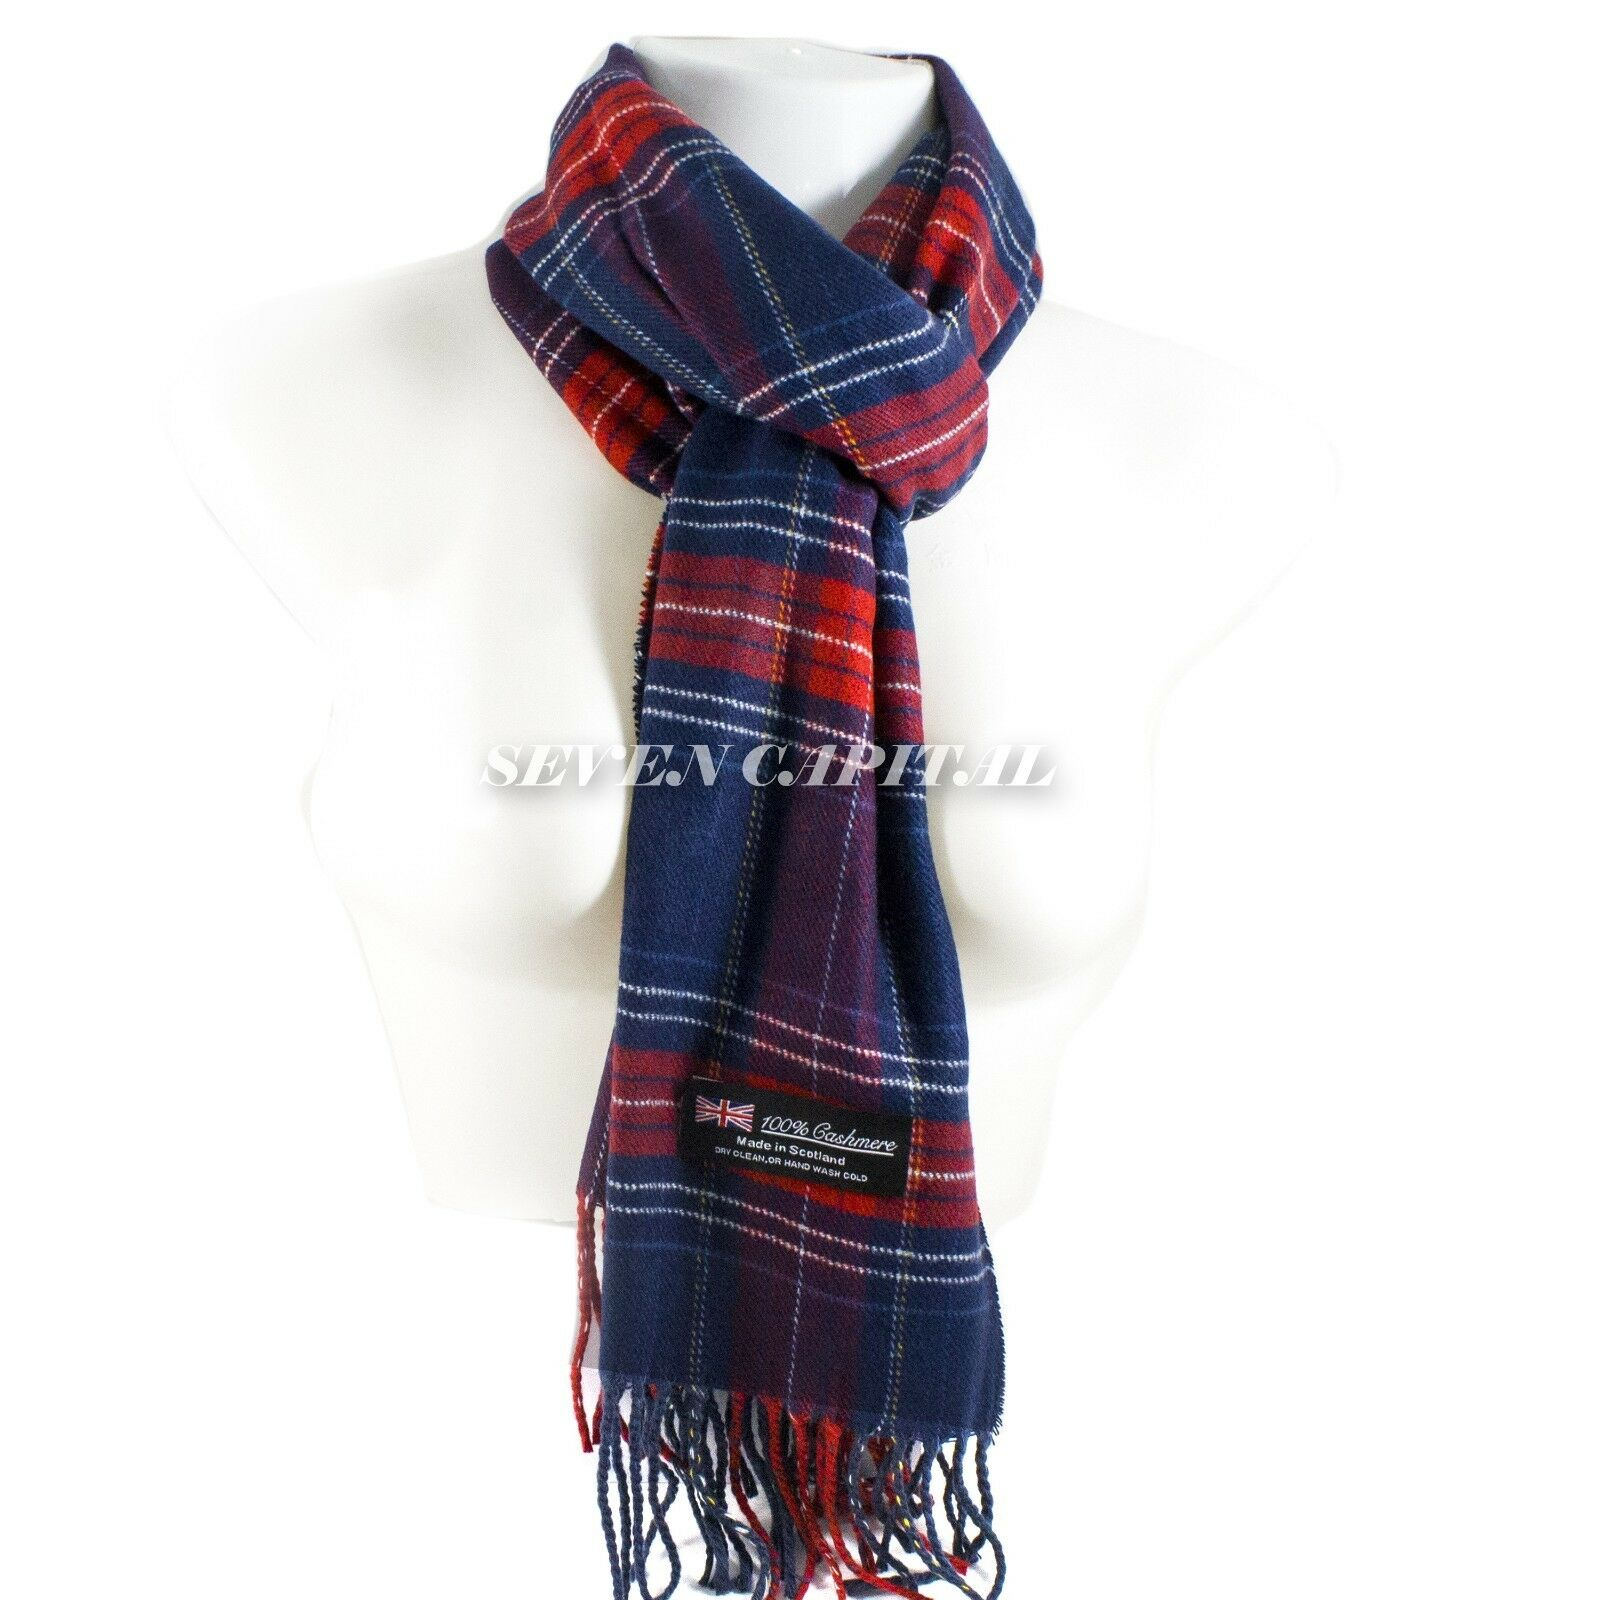 Mens Womens Winter Warm SCOTLAND Made 100% CASHMERE Scarf Scarves Plaid Wool 19. Plaid: Navy/Hot/Red